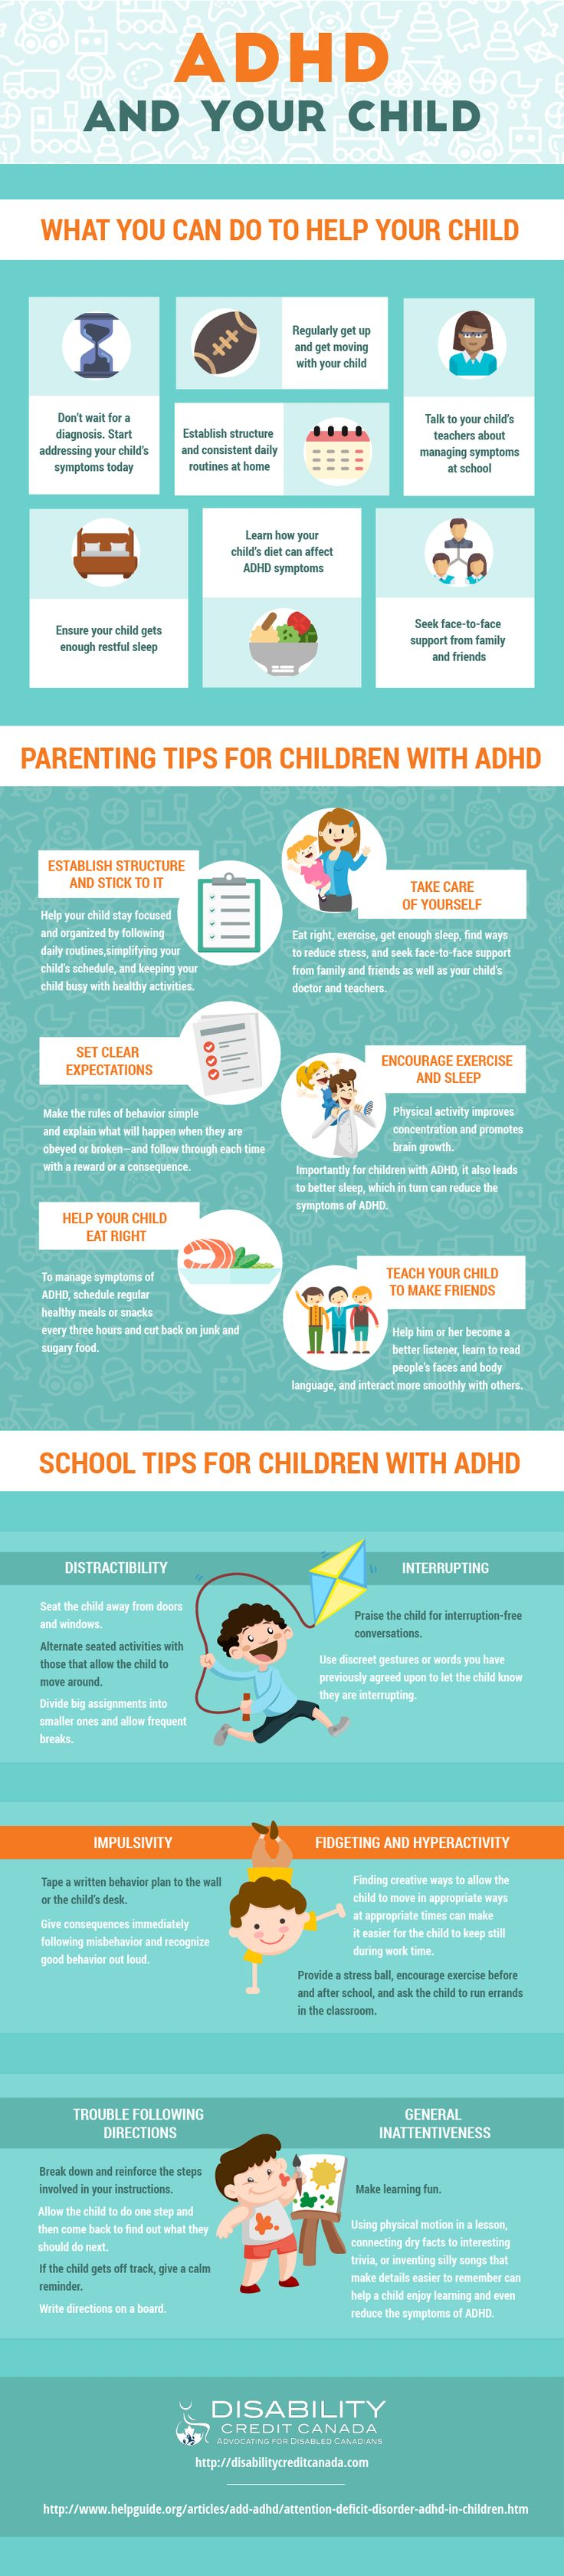 Tips For Taking Care Of Children Who Have ADHD - Infographic